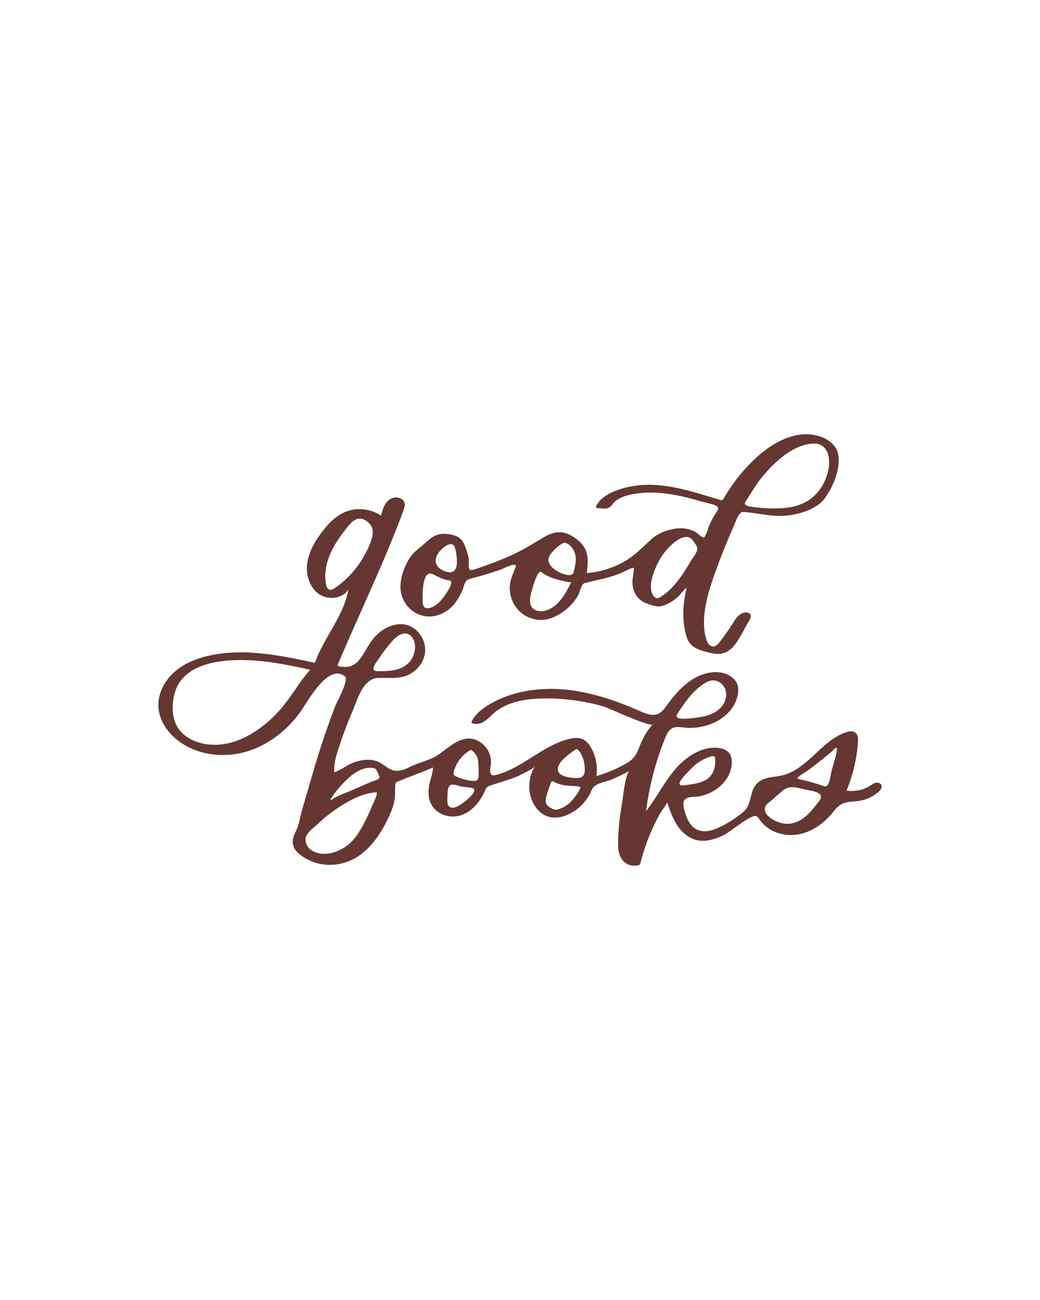 """good books"" calligraphy"